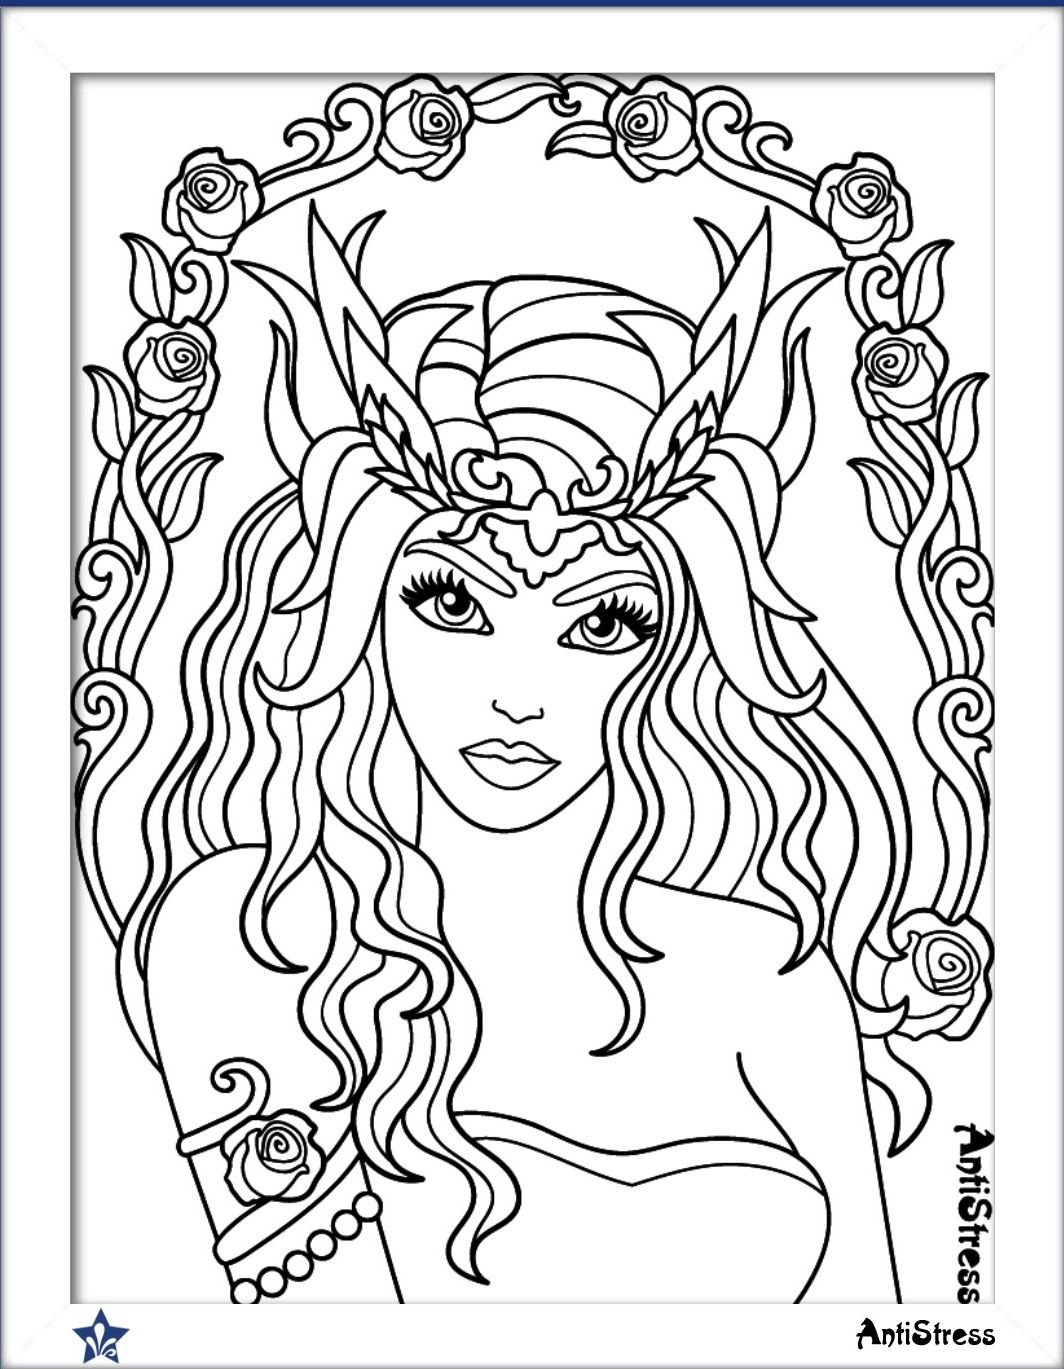 Pin On Beautiful Women Coloring Pages For Adults [ 1369 x 1064 Pixel ]